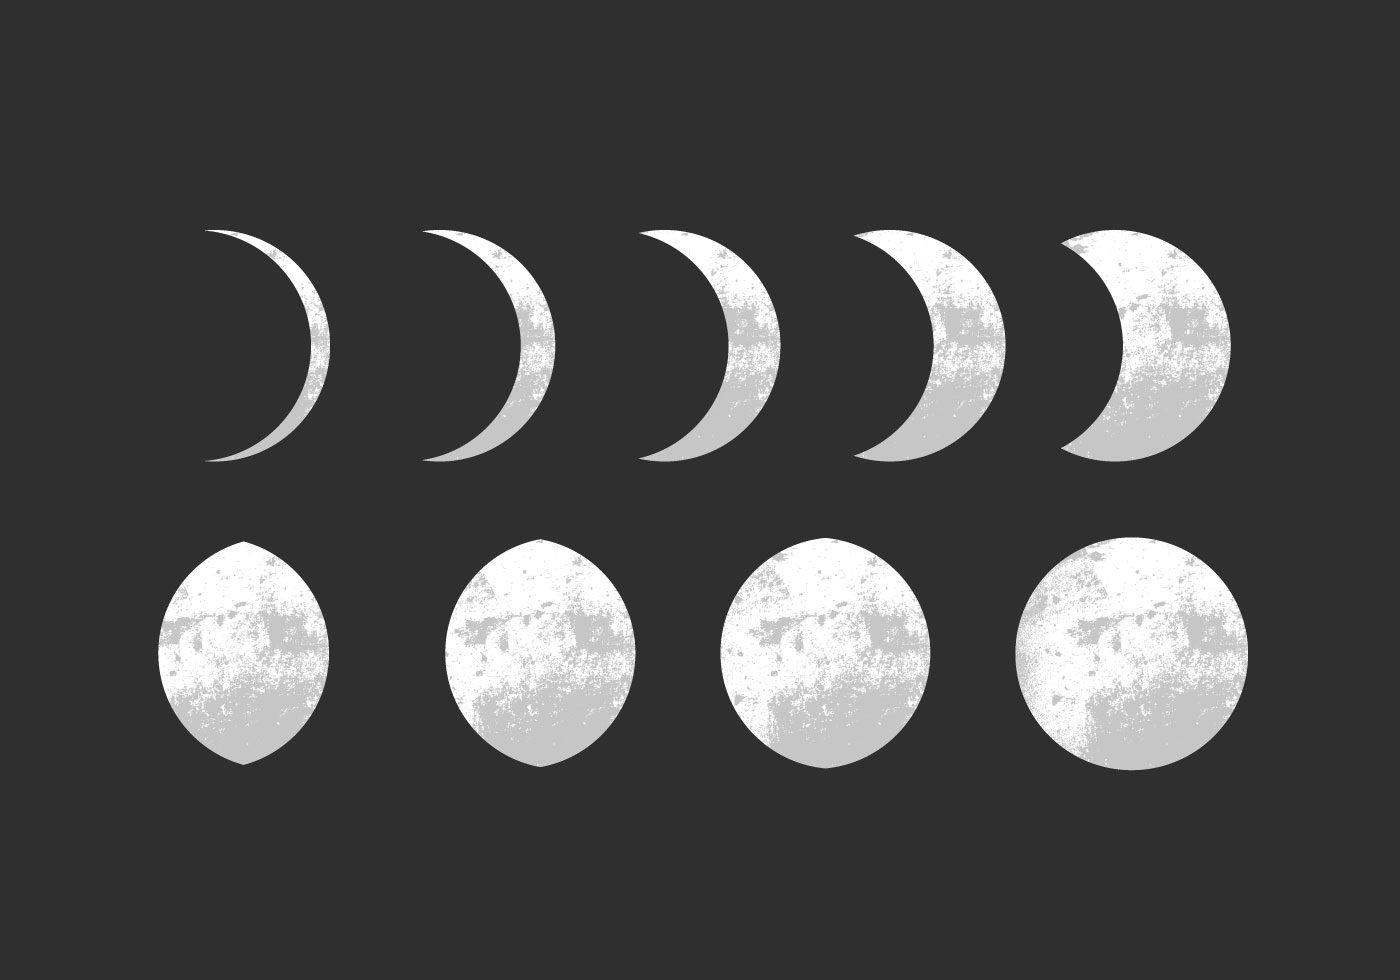 Moon Phase Vectors Vector White Icons